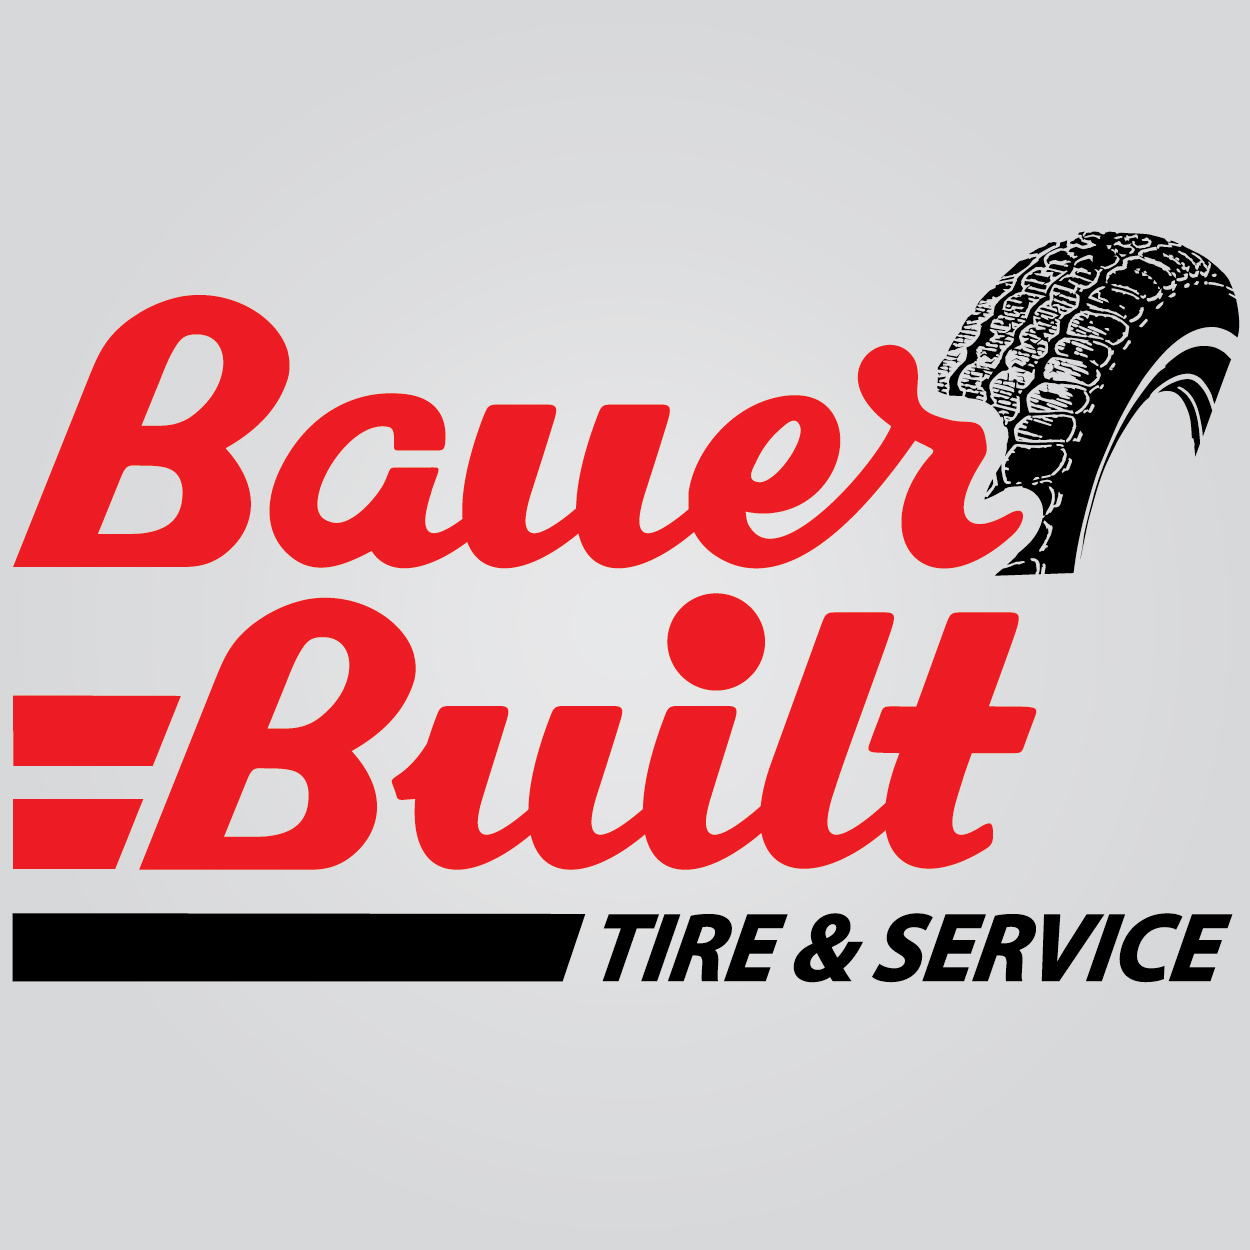 Bauer Built Tire & Service in Cedar Rapids, IA. Custom tire retreading of passenger, light & commercial truck, agricultural, industrial & off-the-road tires, including rim & wheel reconditioning & powder coating & distributor of new commercial truck tires.